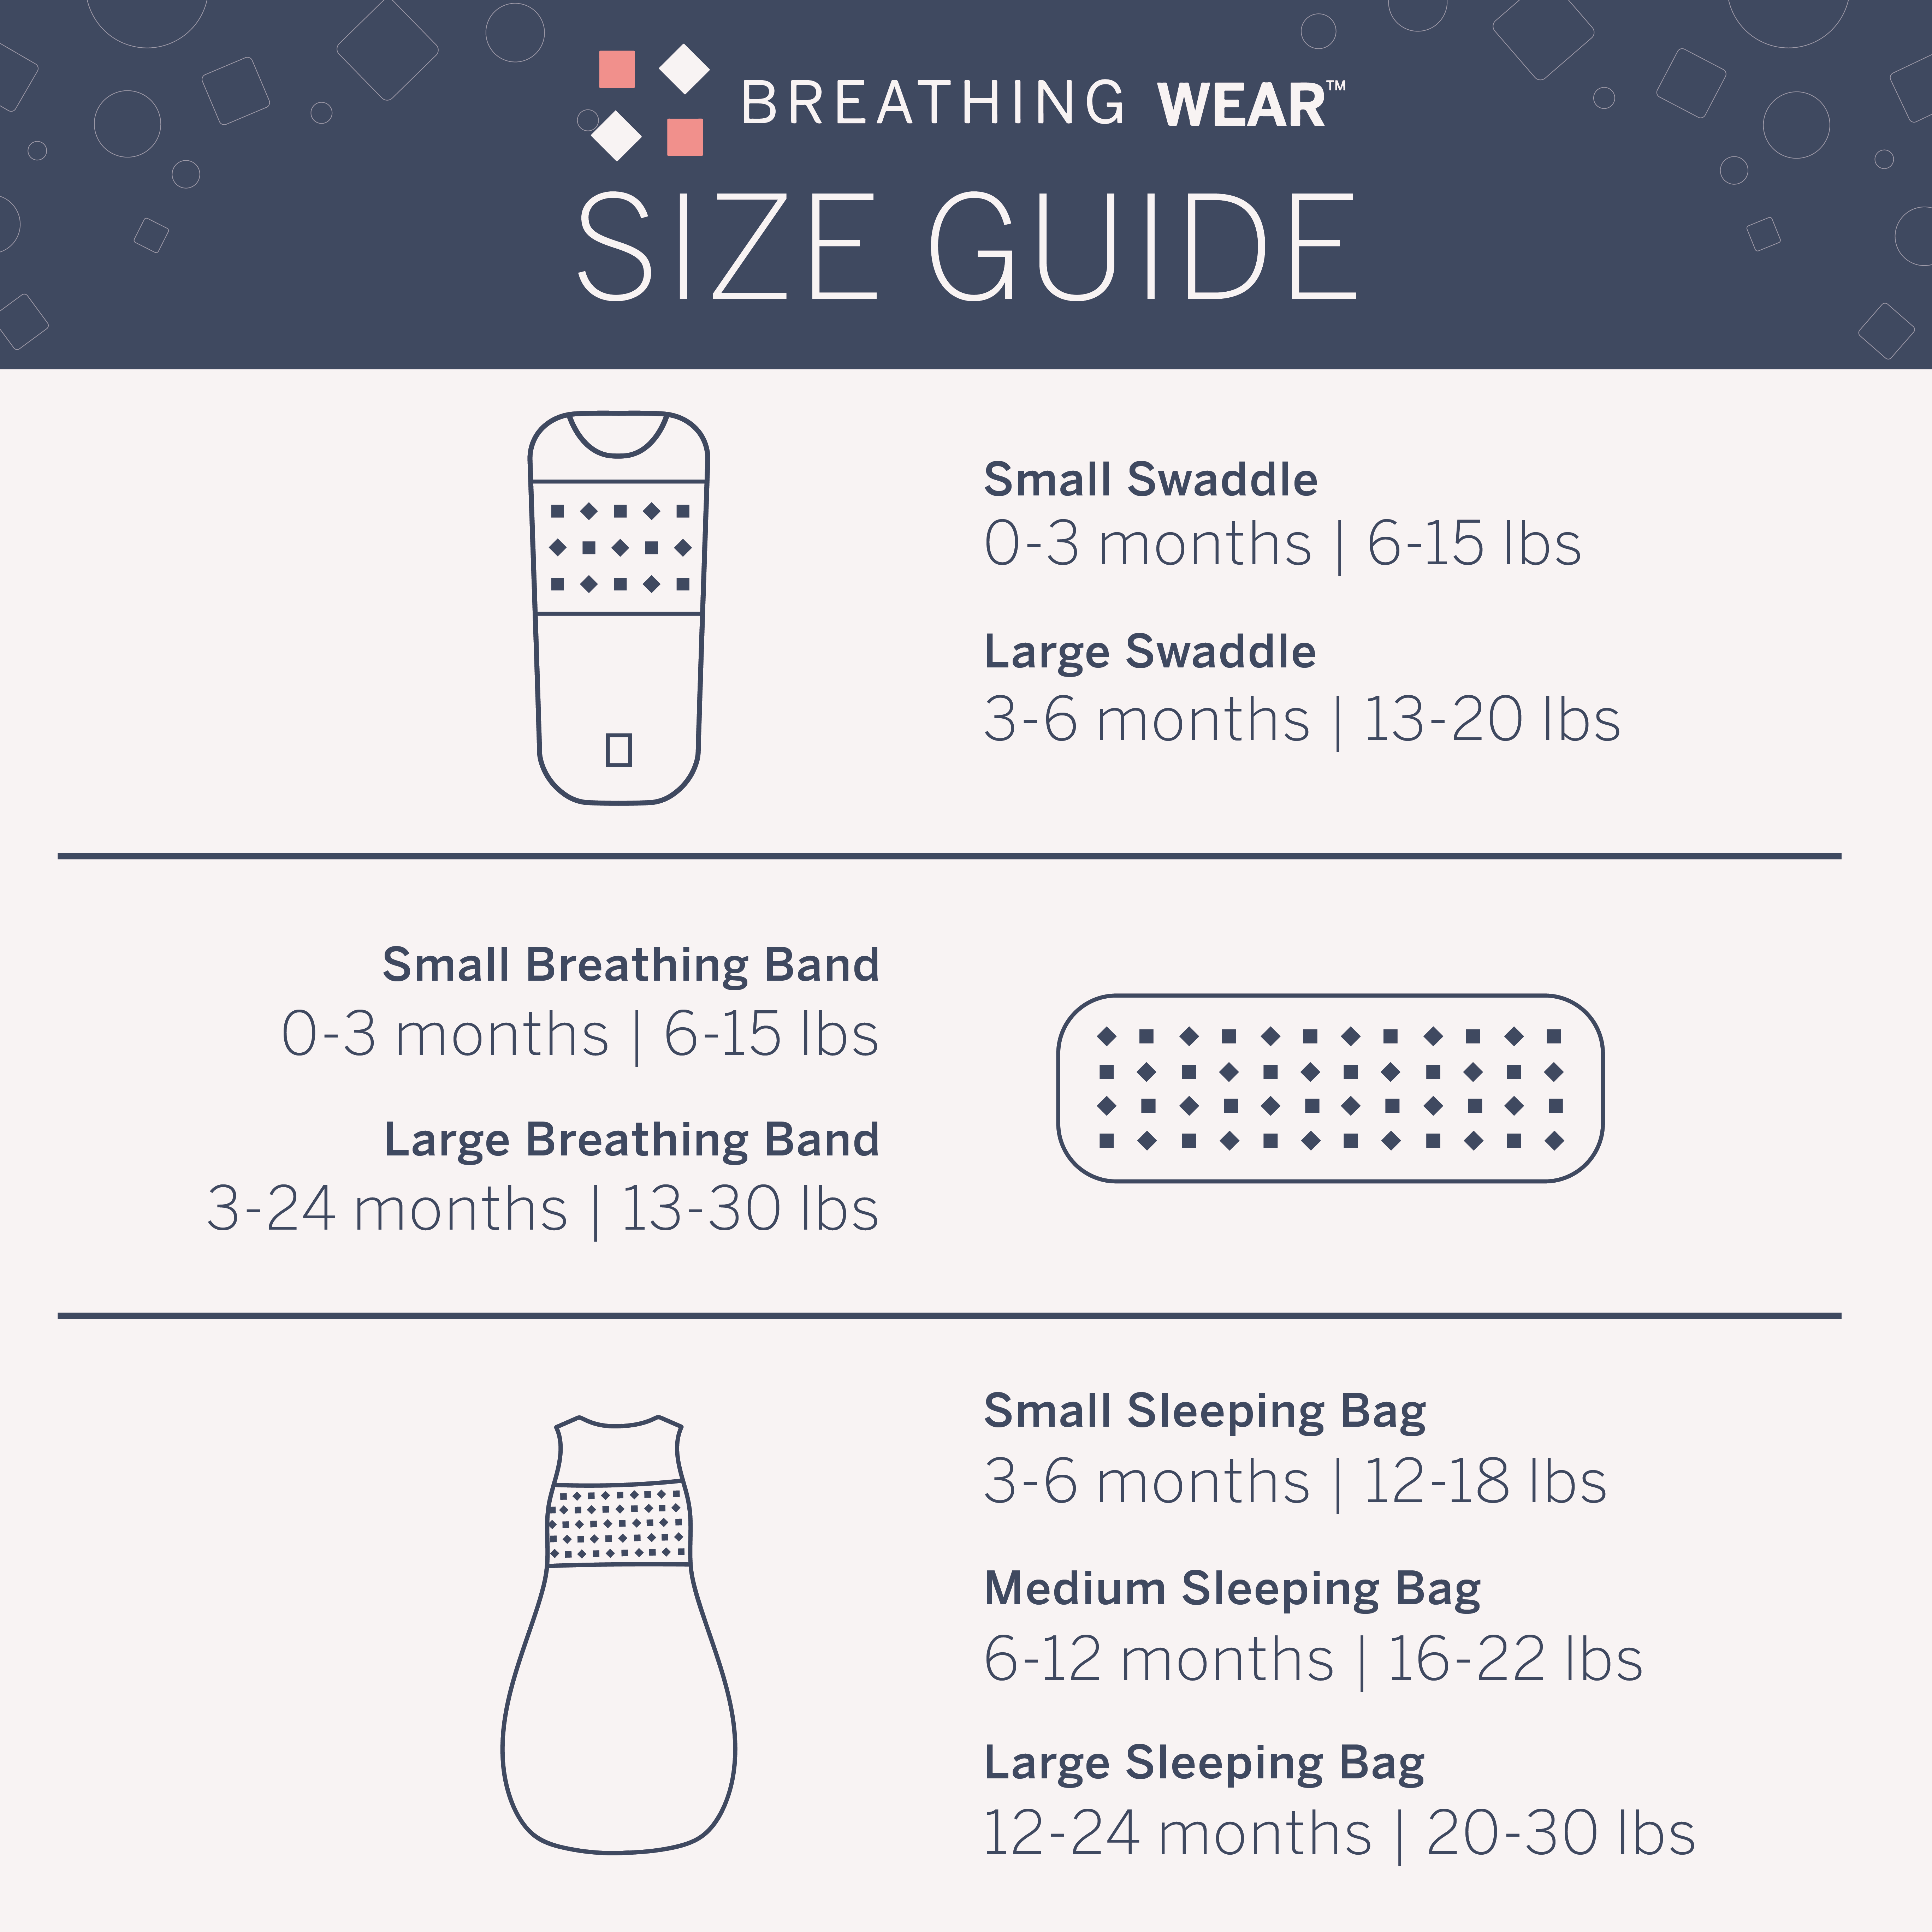 Nanit_Breathing_Wear_Size_Chart_Draft_7.png